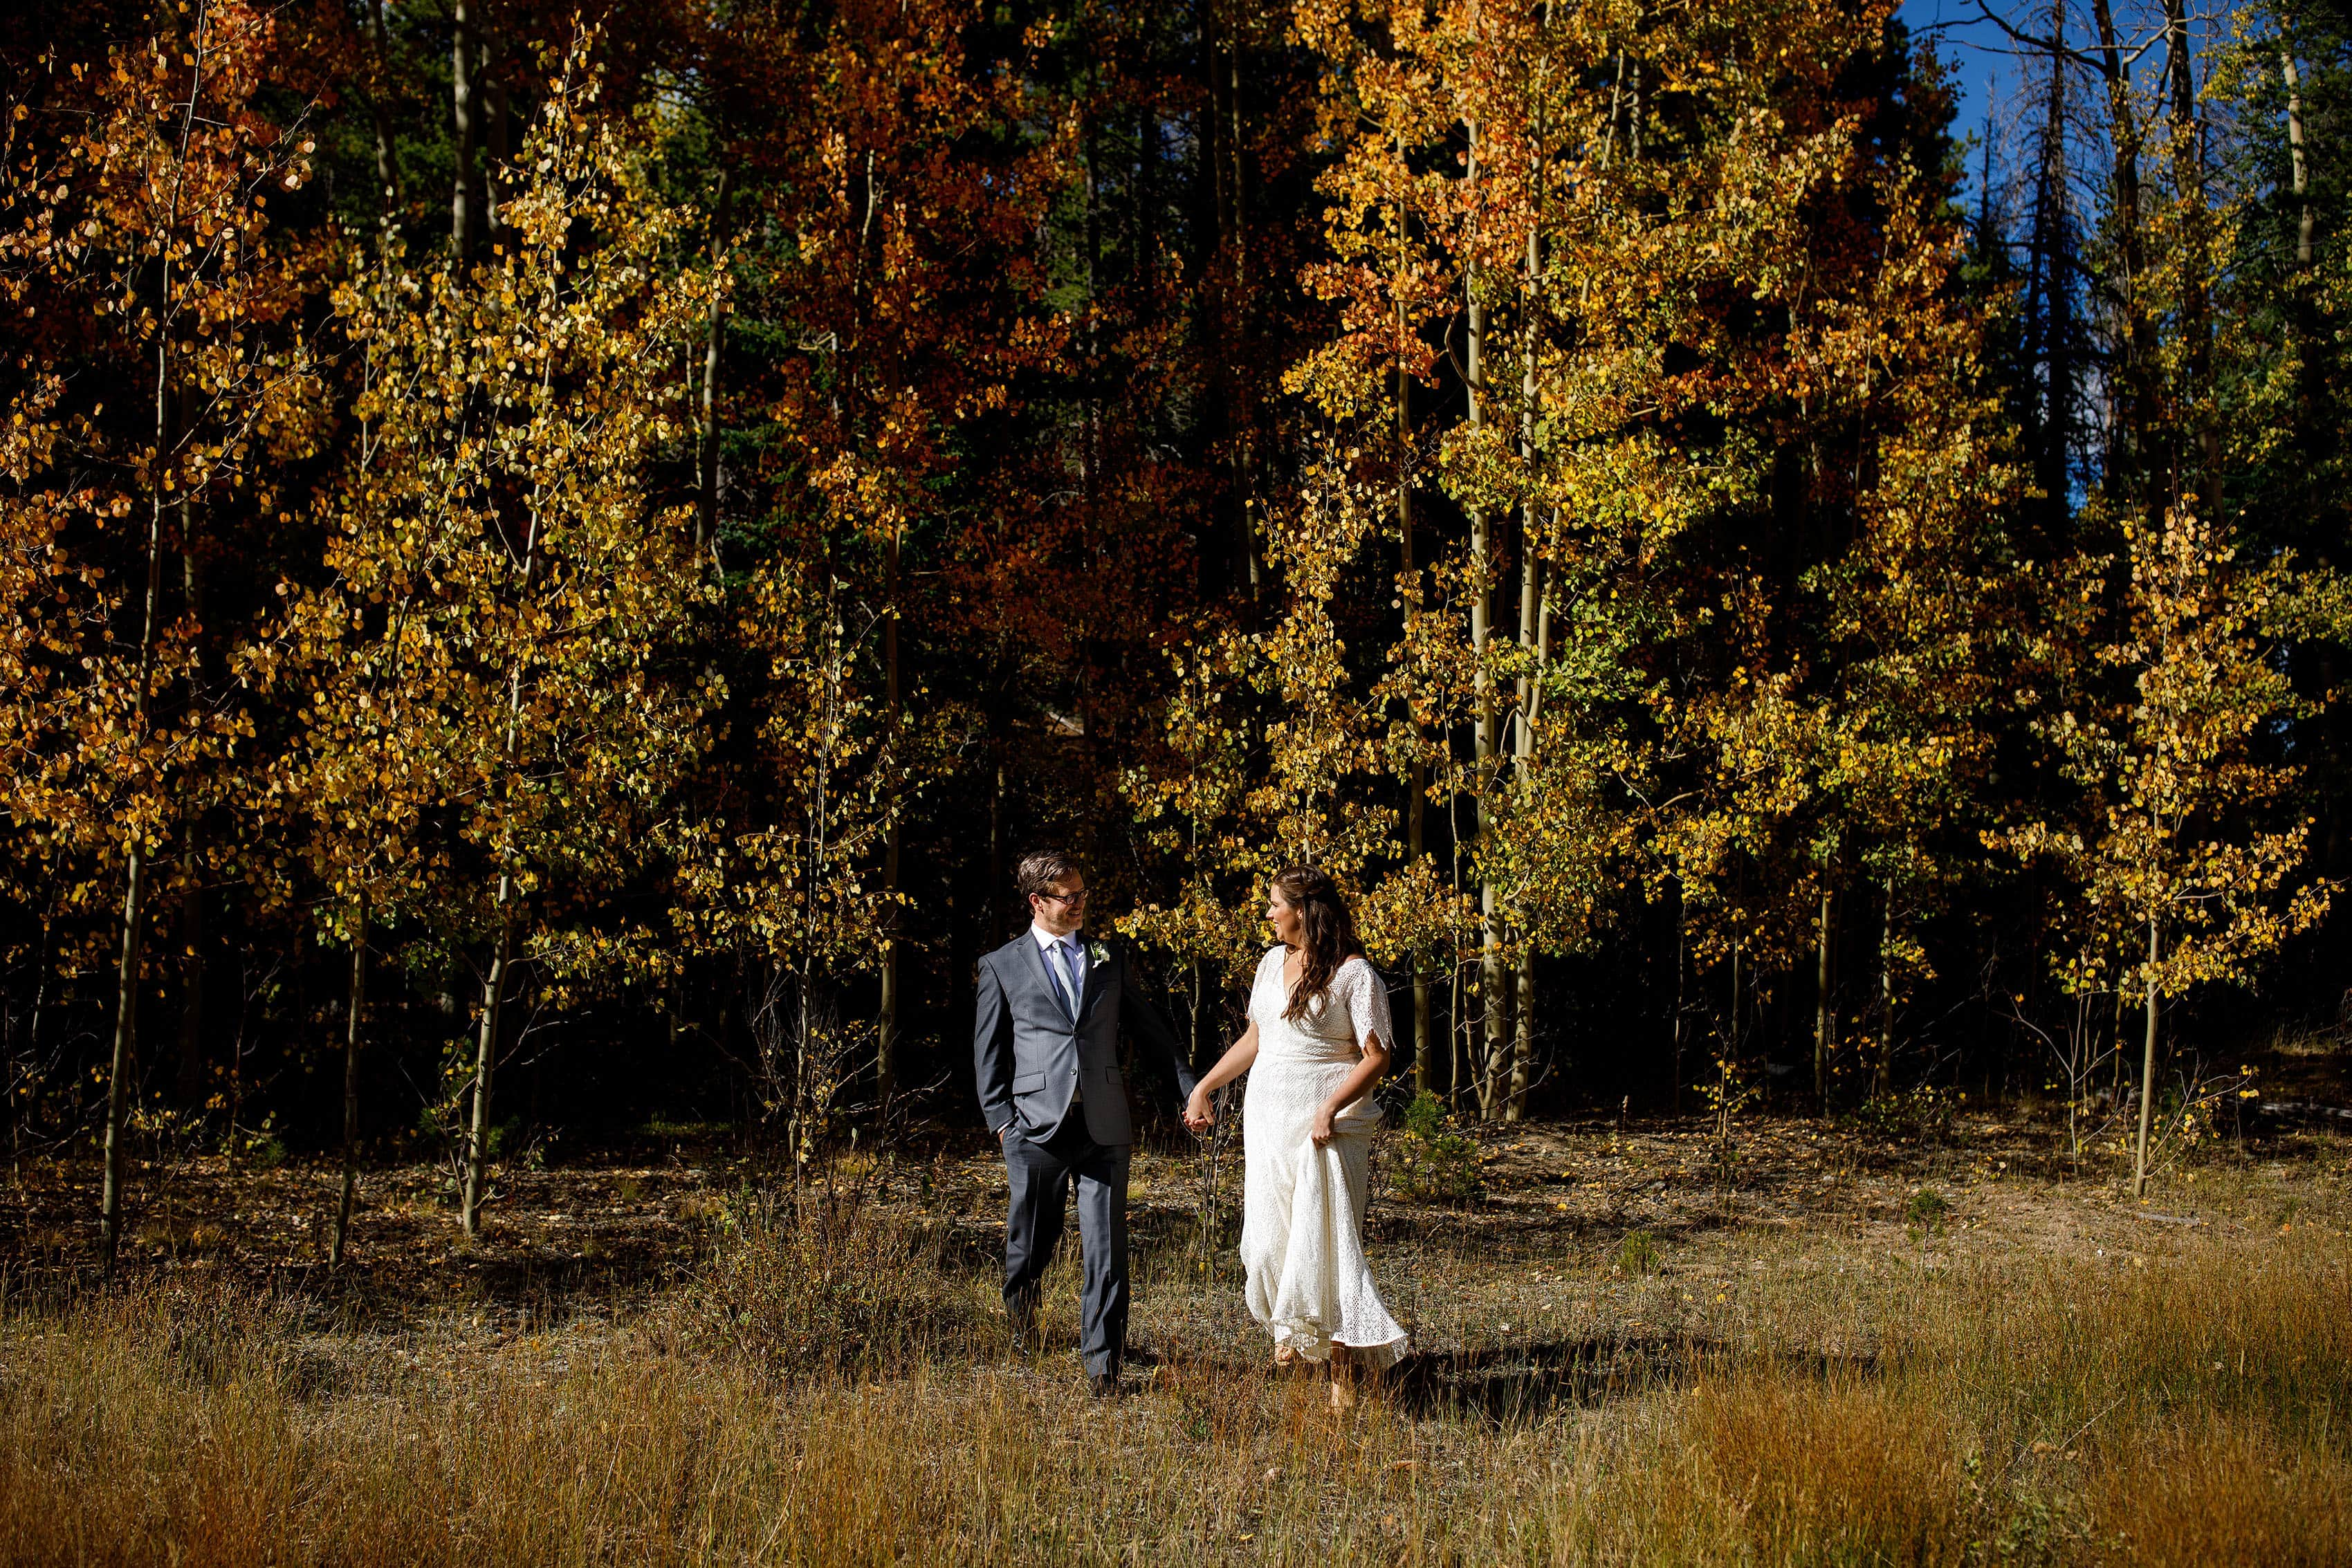 The newlyweds walk together near a grove of colorful aspen trees during their fall Blackstone Rivers Ranch wedding in Idaho Springs Colorado